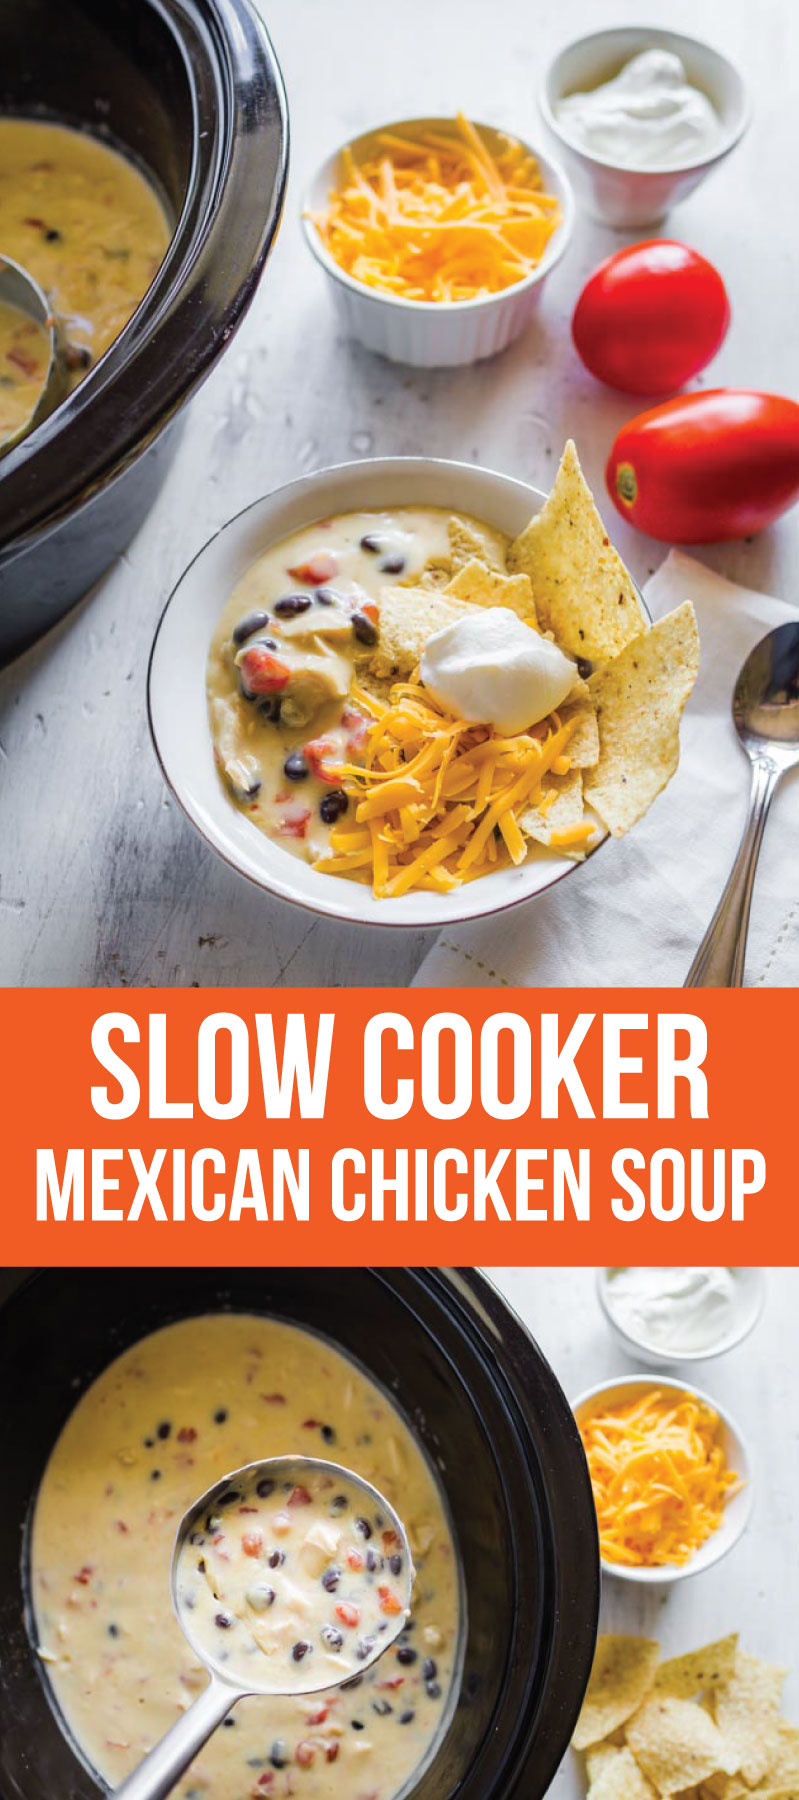 Food: Slow Cooker Mexican Chicken Soup - an easy to throw together soup in the crockpot. Yum!